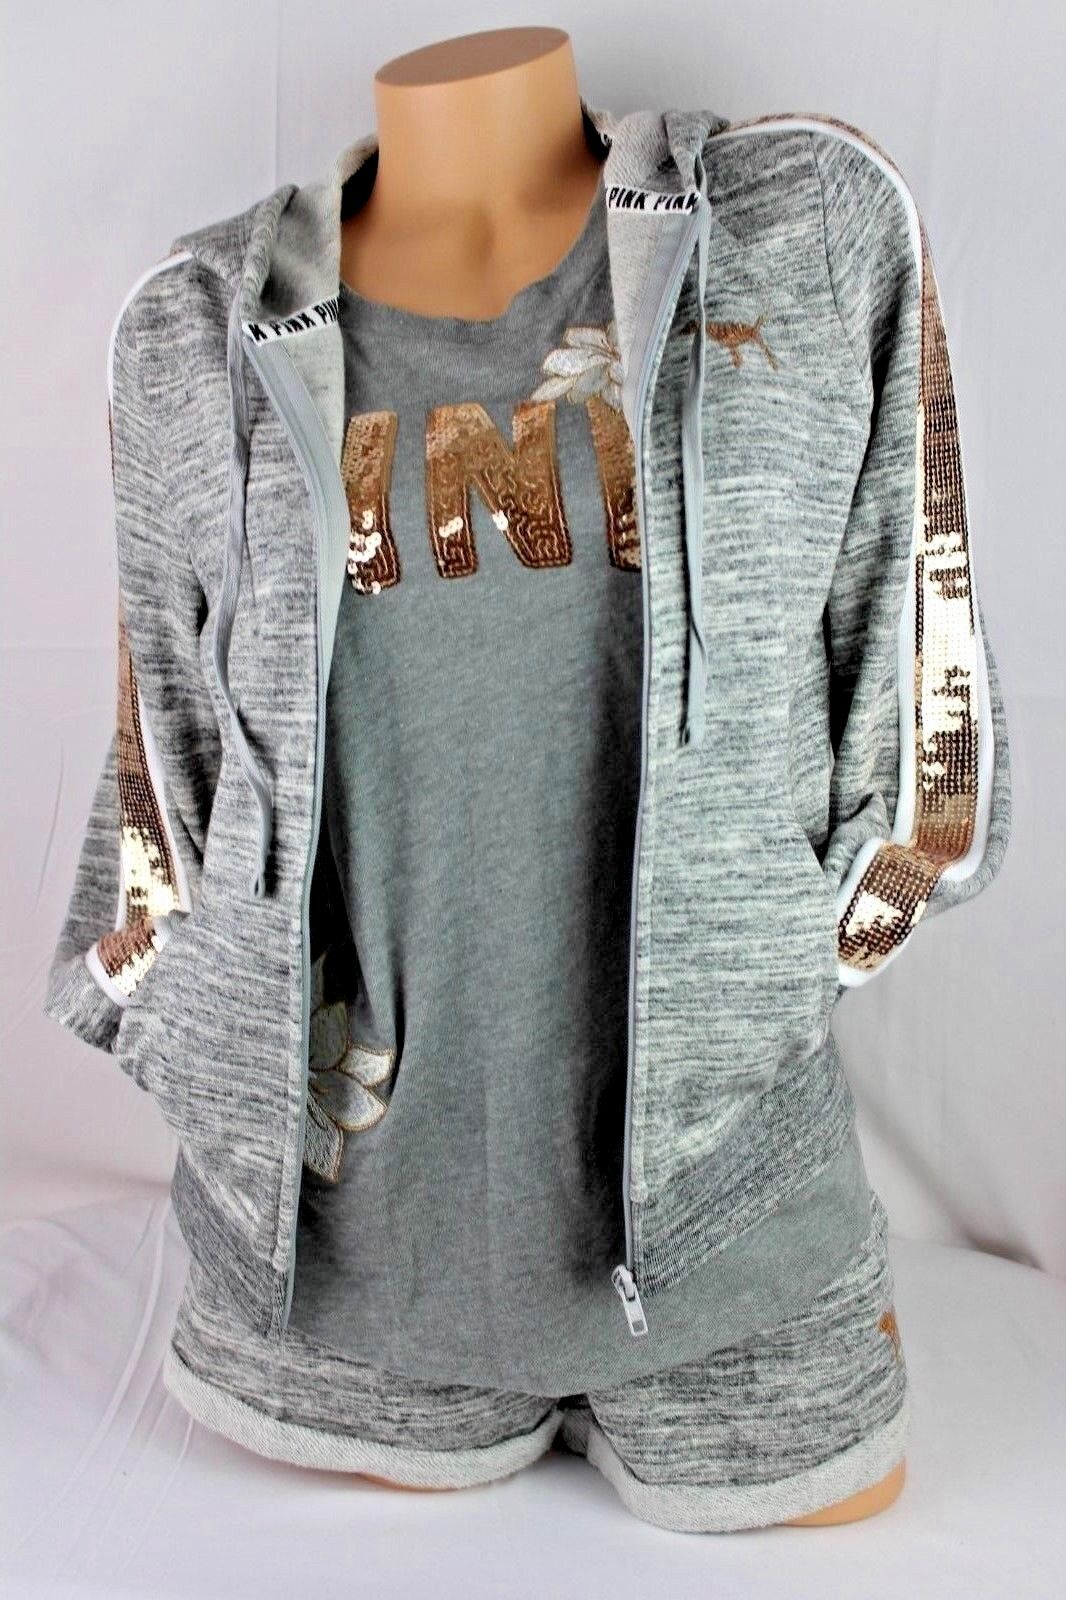 VICTORIA'S SECRET  PINK BLINK SEQUIN HOODIE TANK TOP SHORTS SET SIZE S M M SS121